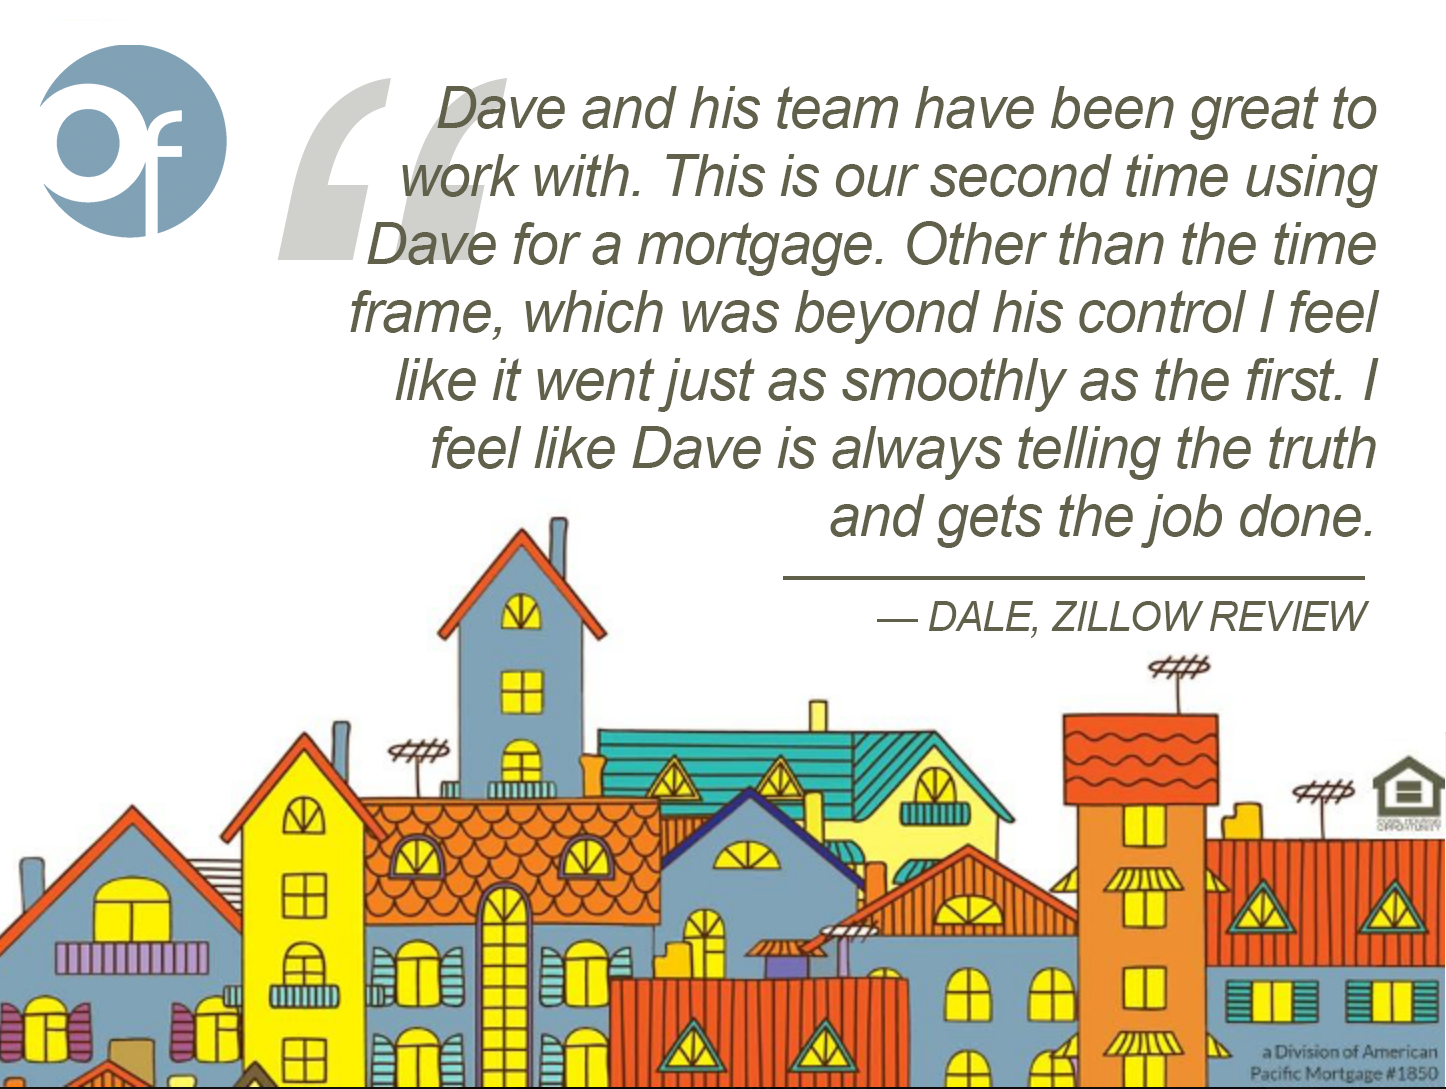 Dave and his team have been great to work with. This is our second time using Dave for a mortgage. Other than the time frame, which was beyond his control I feel like it went just as smoothly as the first. I feel like Dave is always telling the truth and gets the job done.